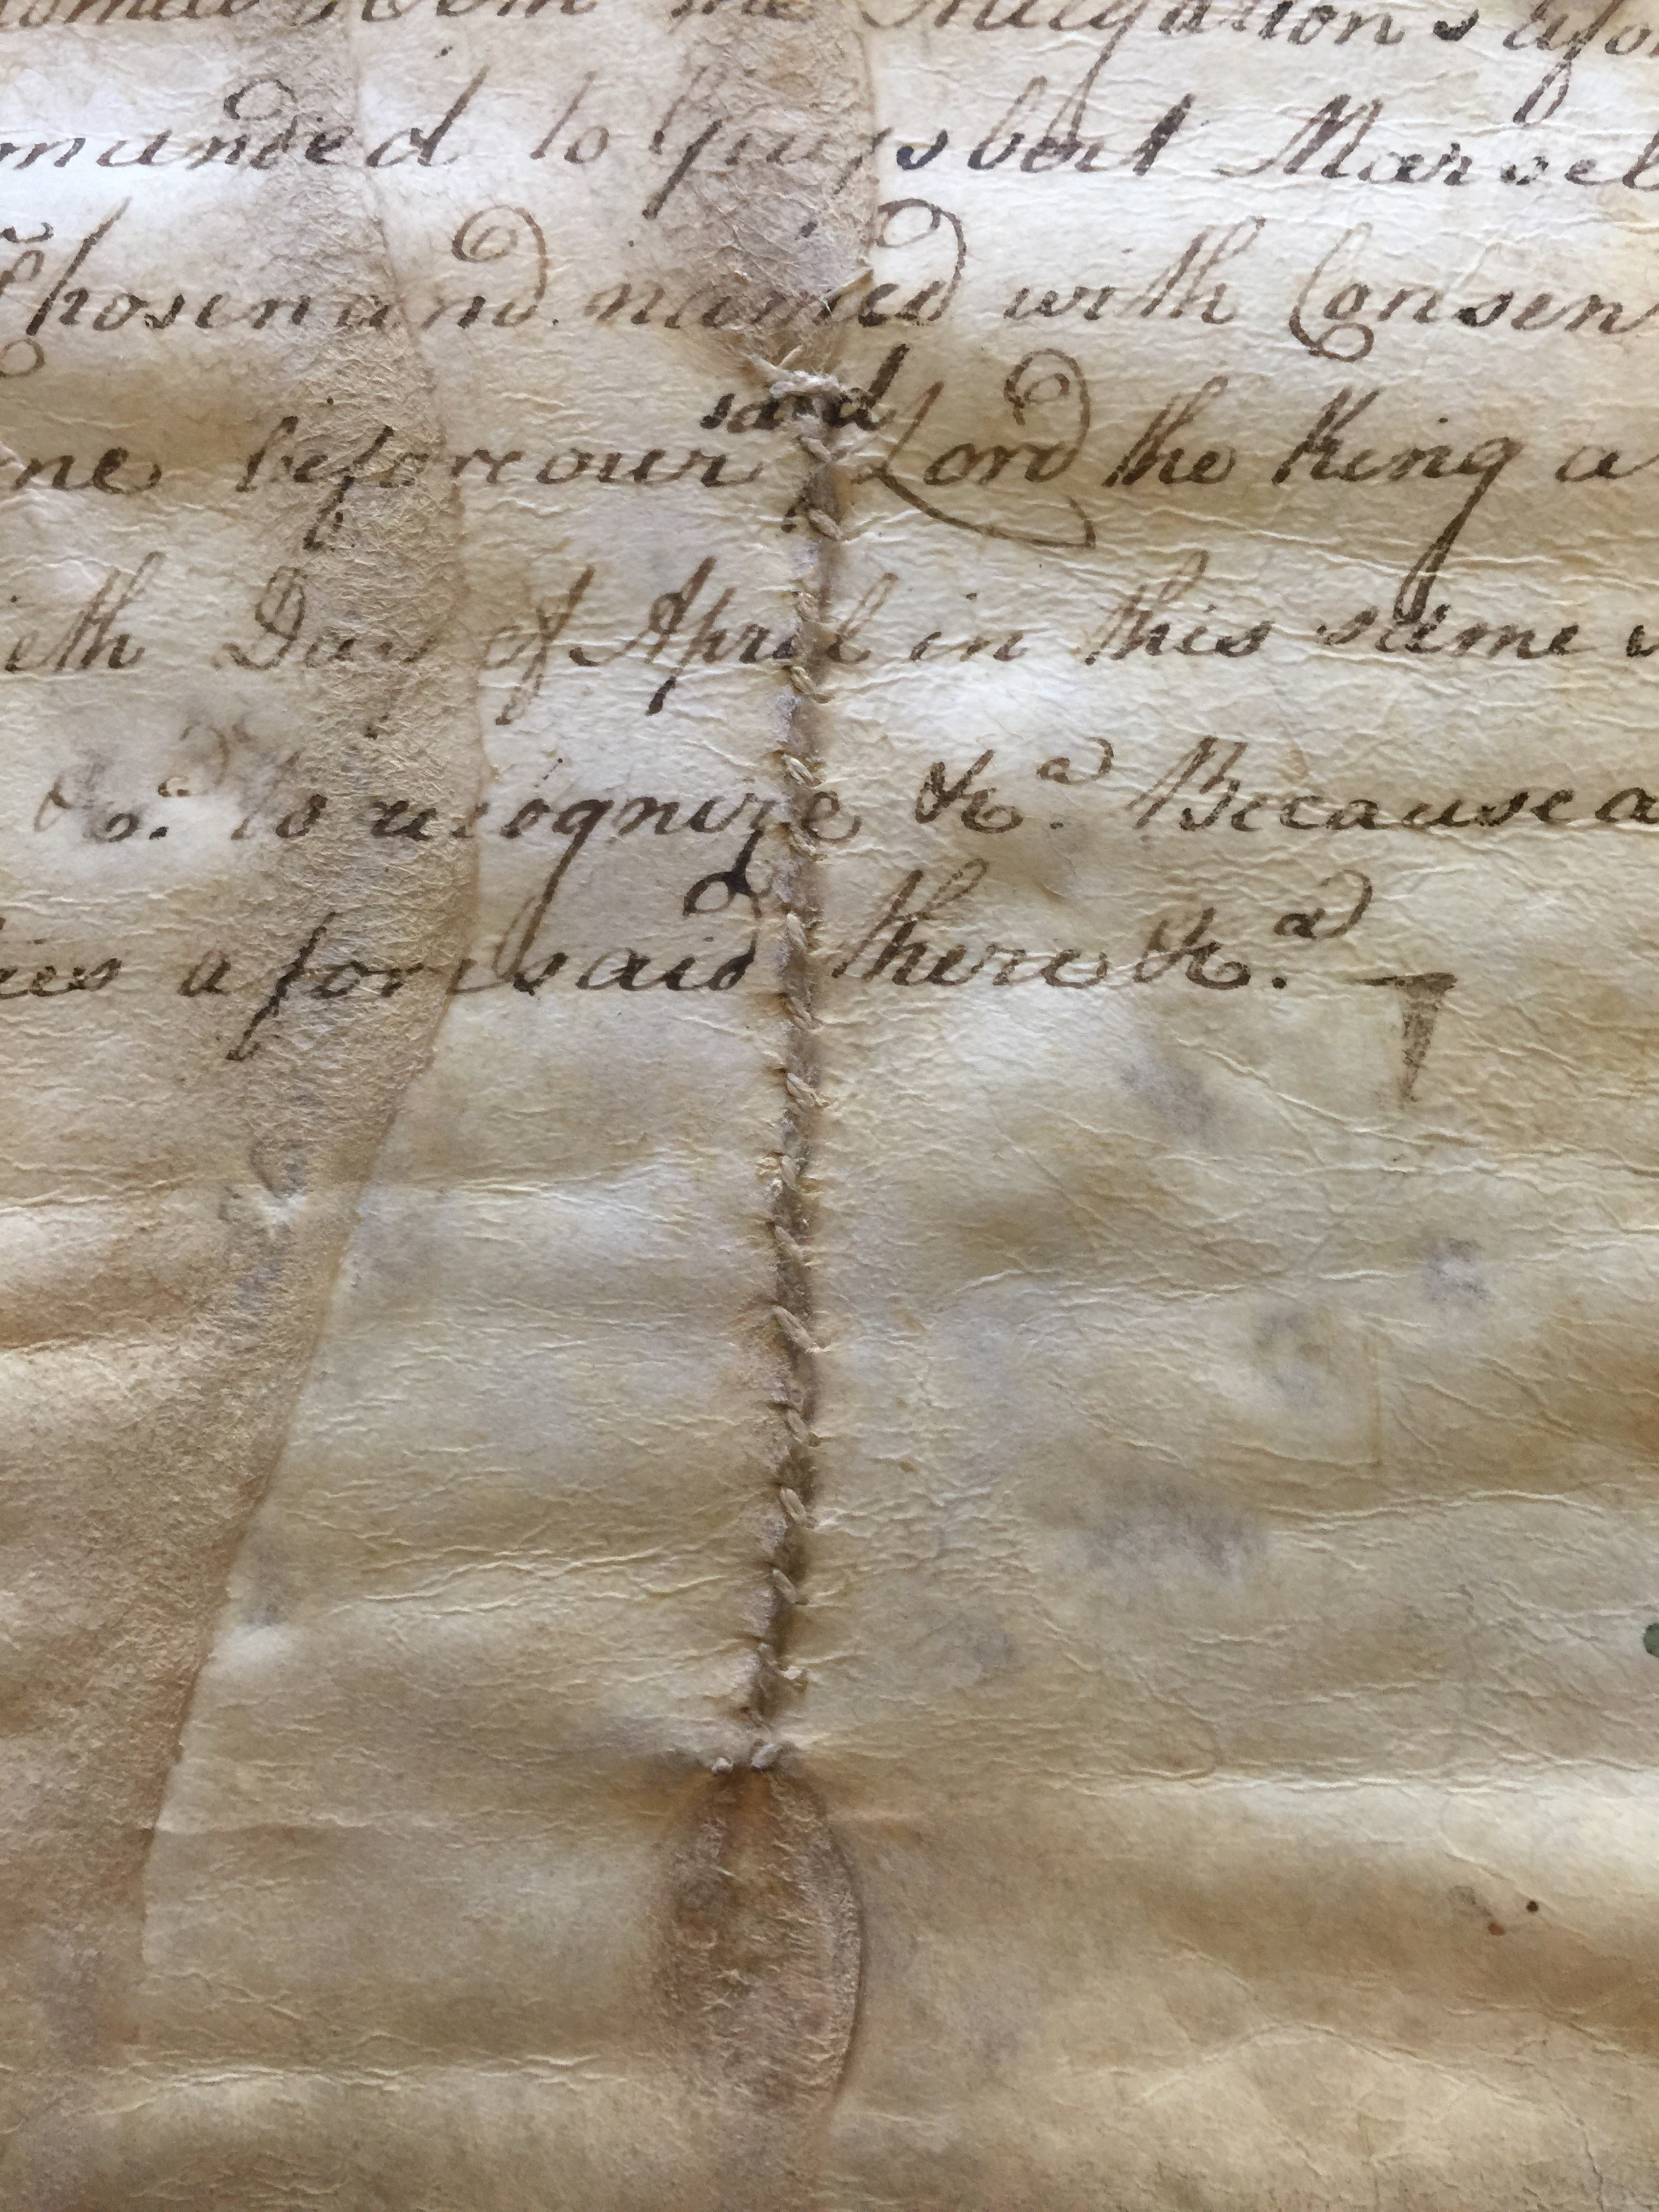 Stitched Repair to a Parchment